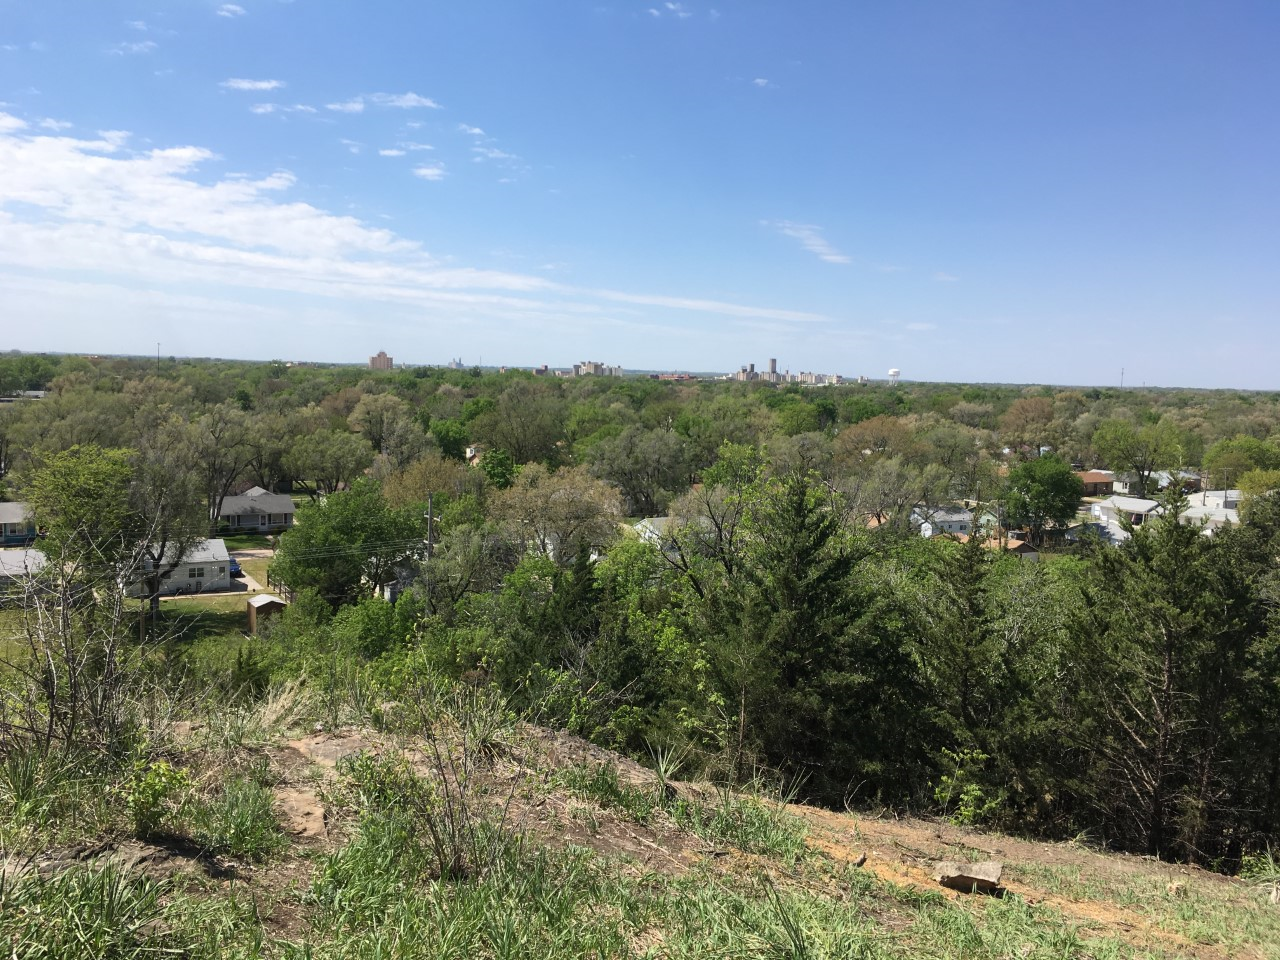 Another view of Salina from the top of Indian Rock Park.